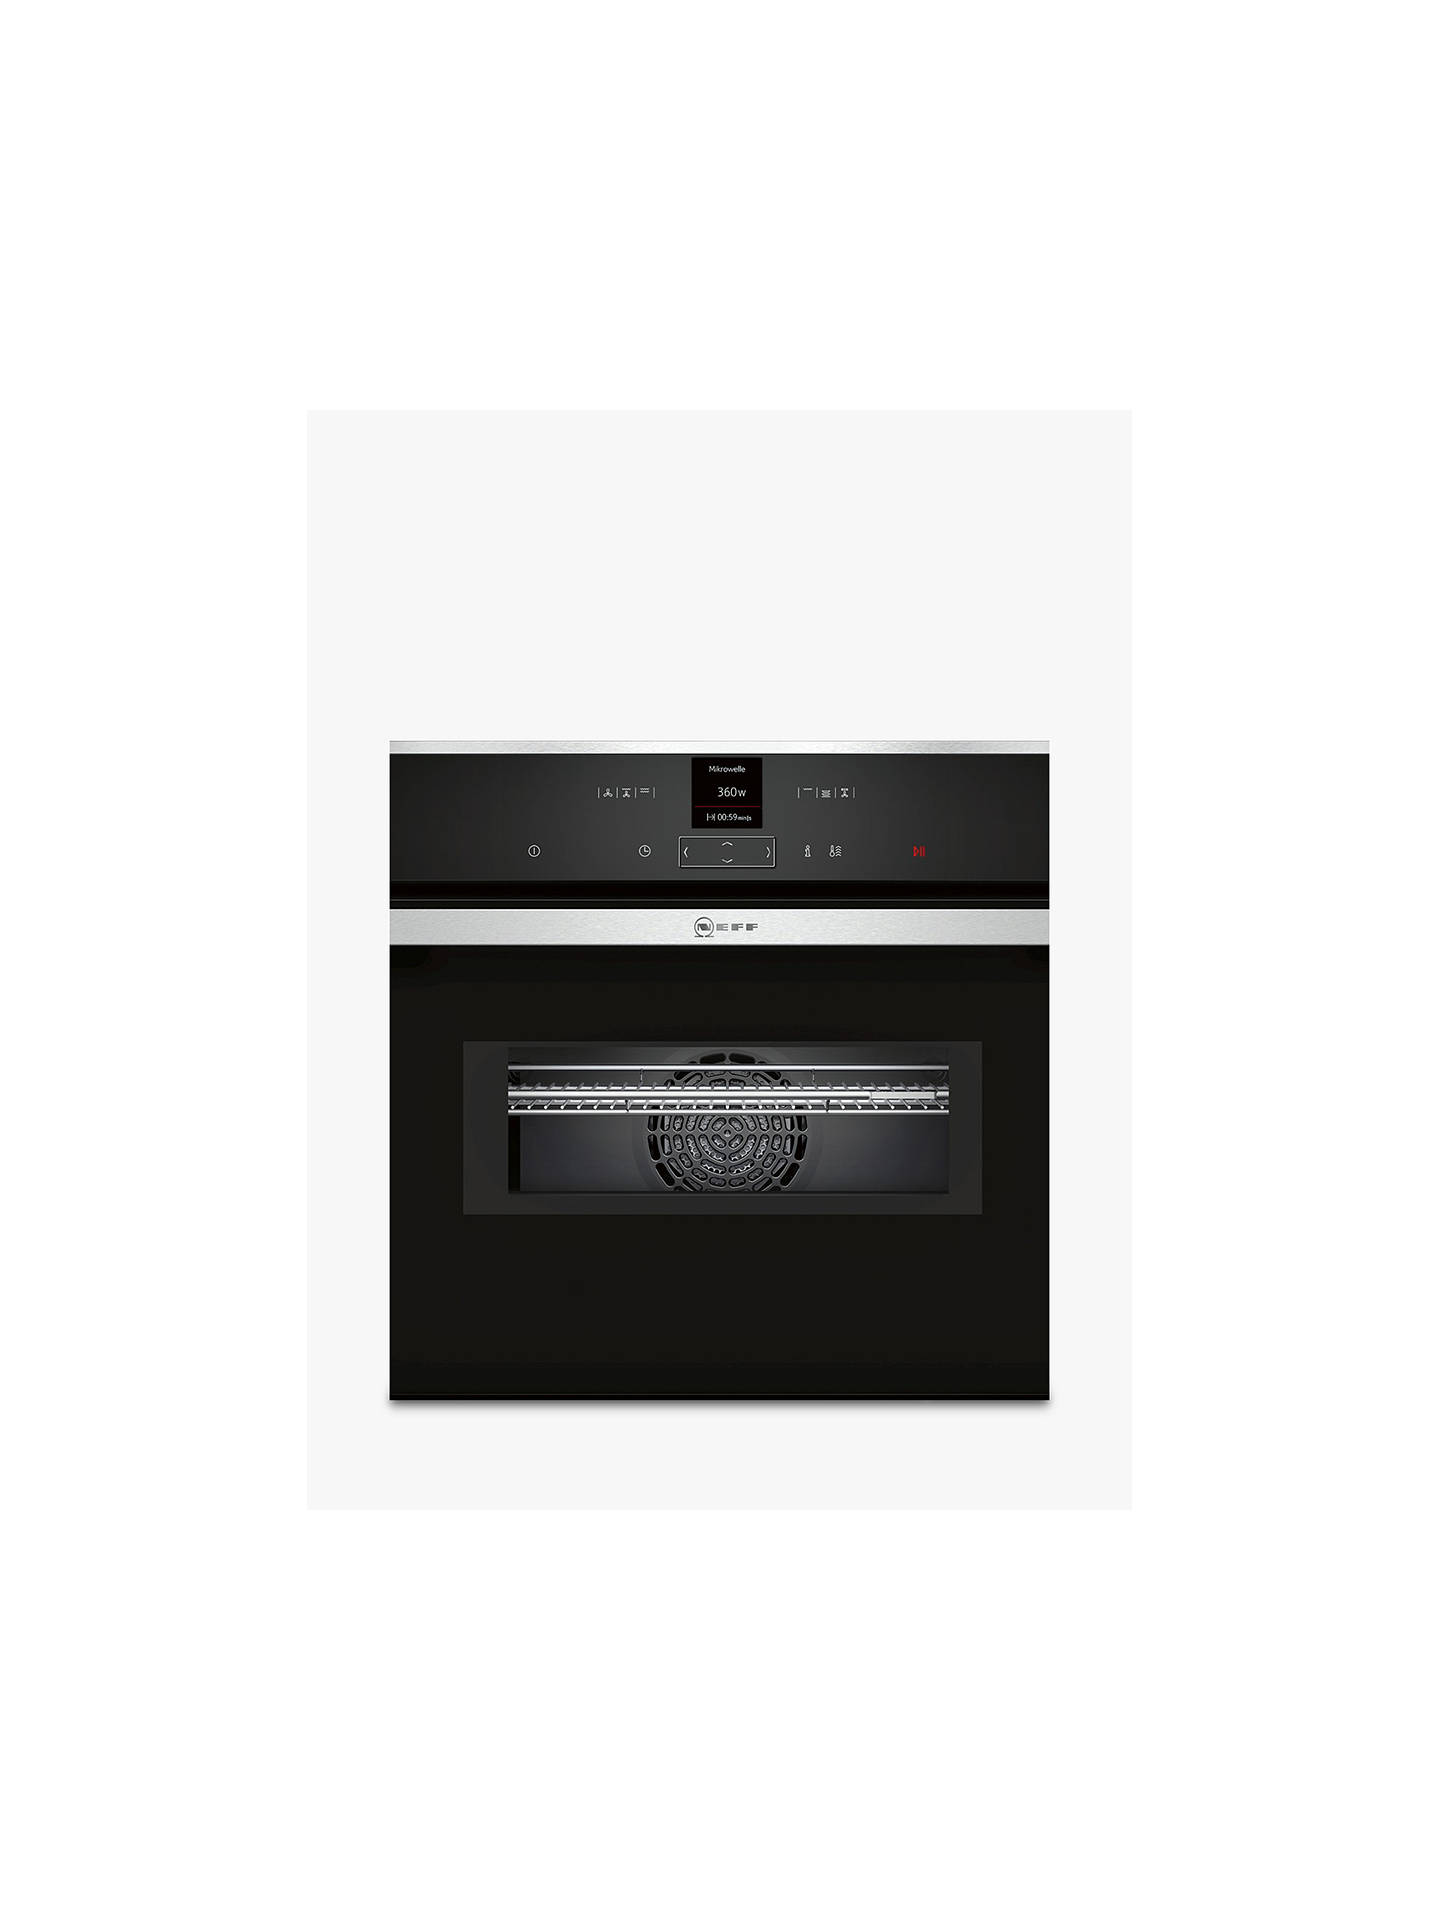 Neff C17mr02n0b Built In Combination Microwave Oven